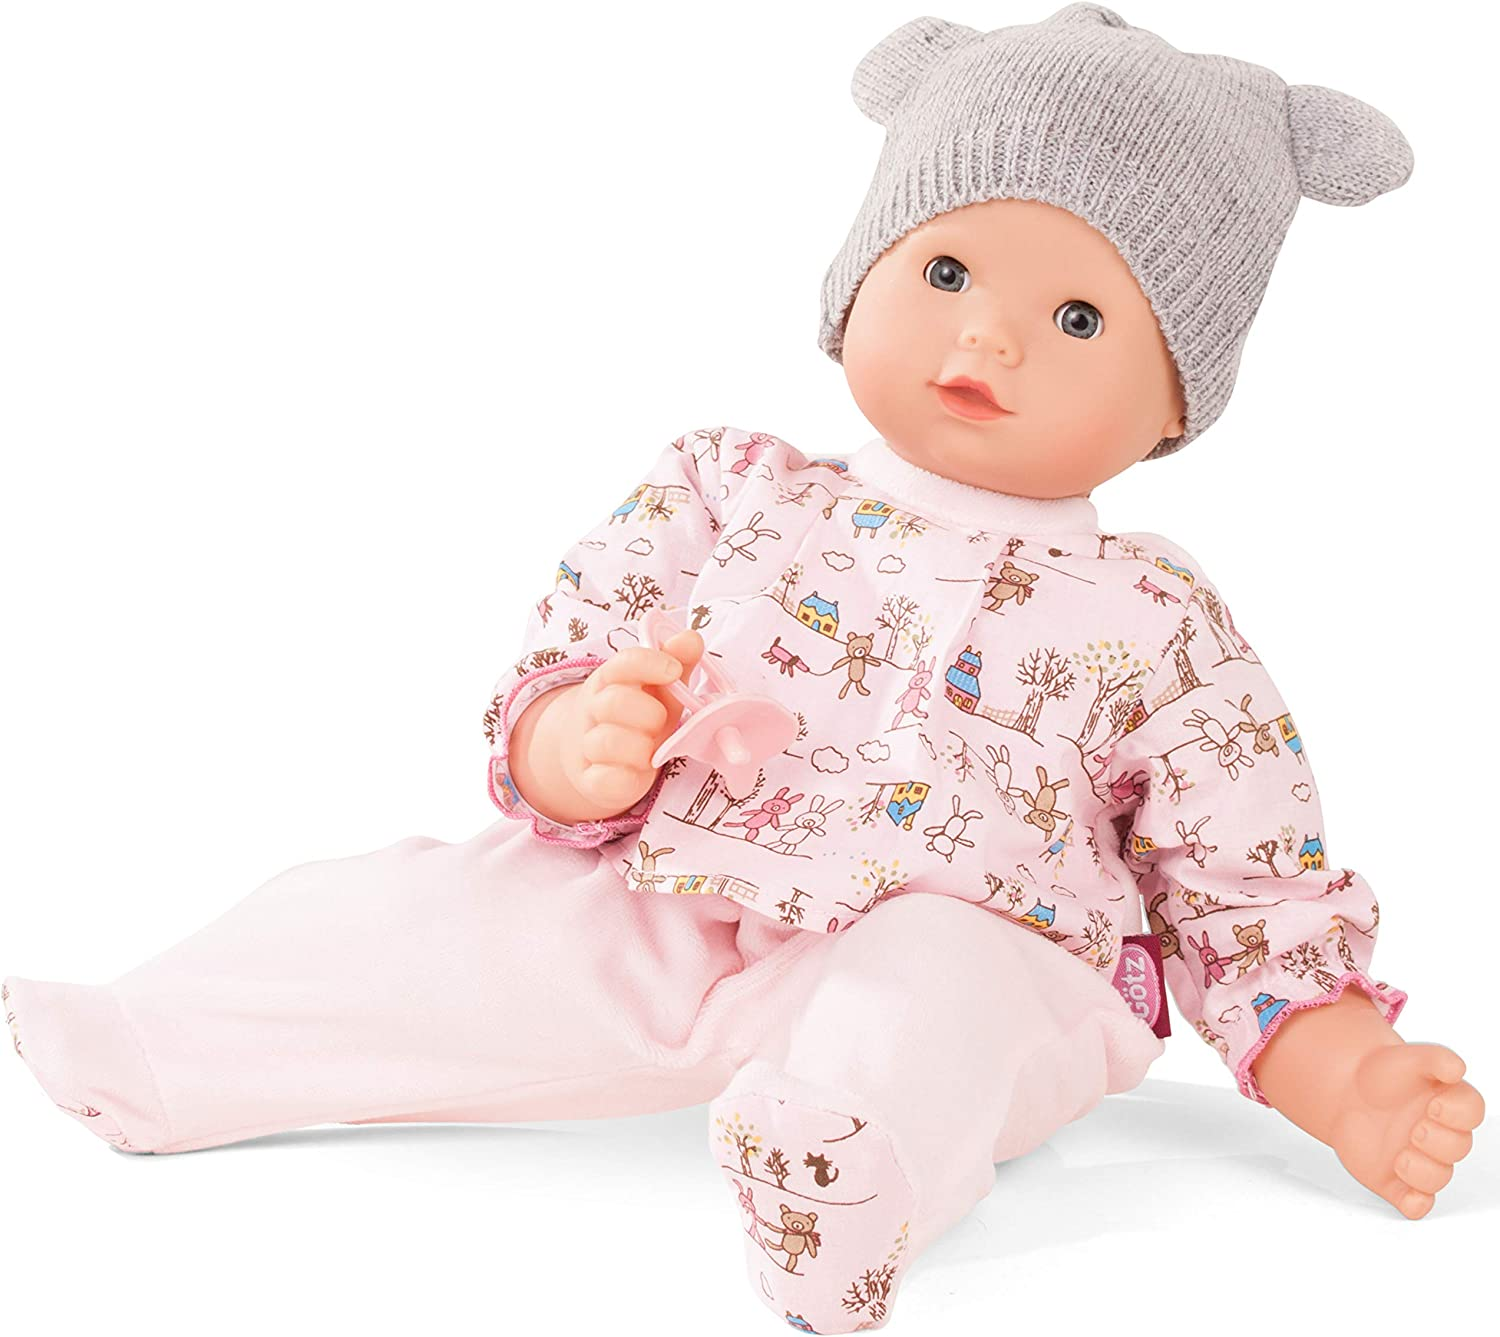 Gotz 1827992 Maxy Muffin Companions SoftBodyDoll  42 cm BabyDoll Without Hair And bluee SleepingEyes  Suitable Agegroup 3+